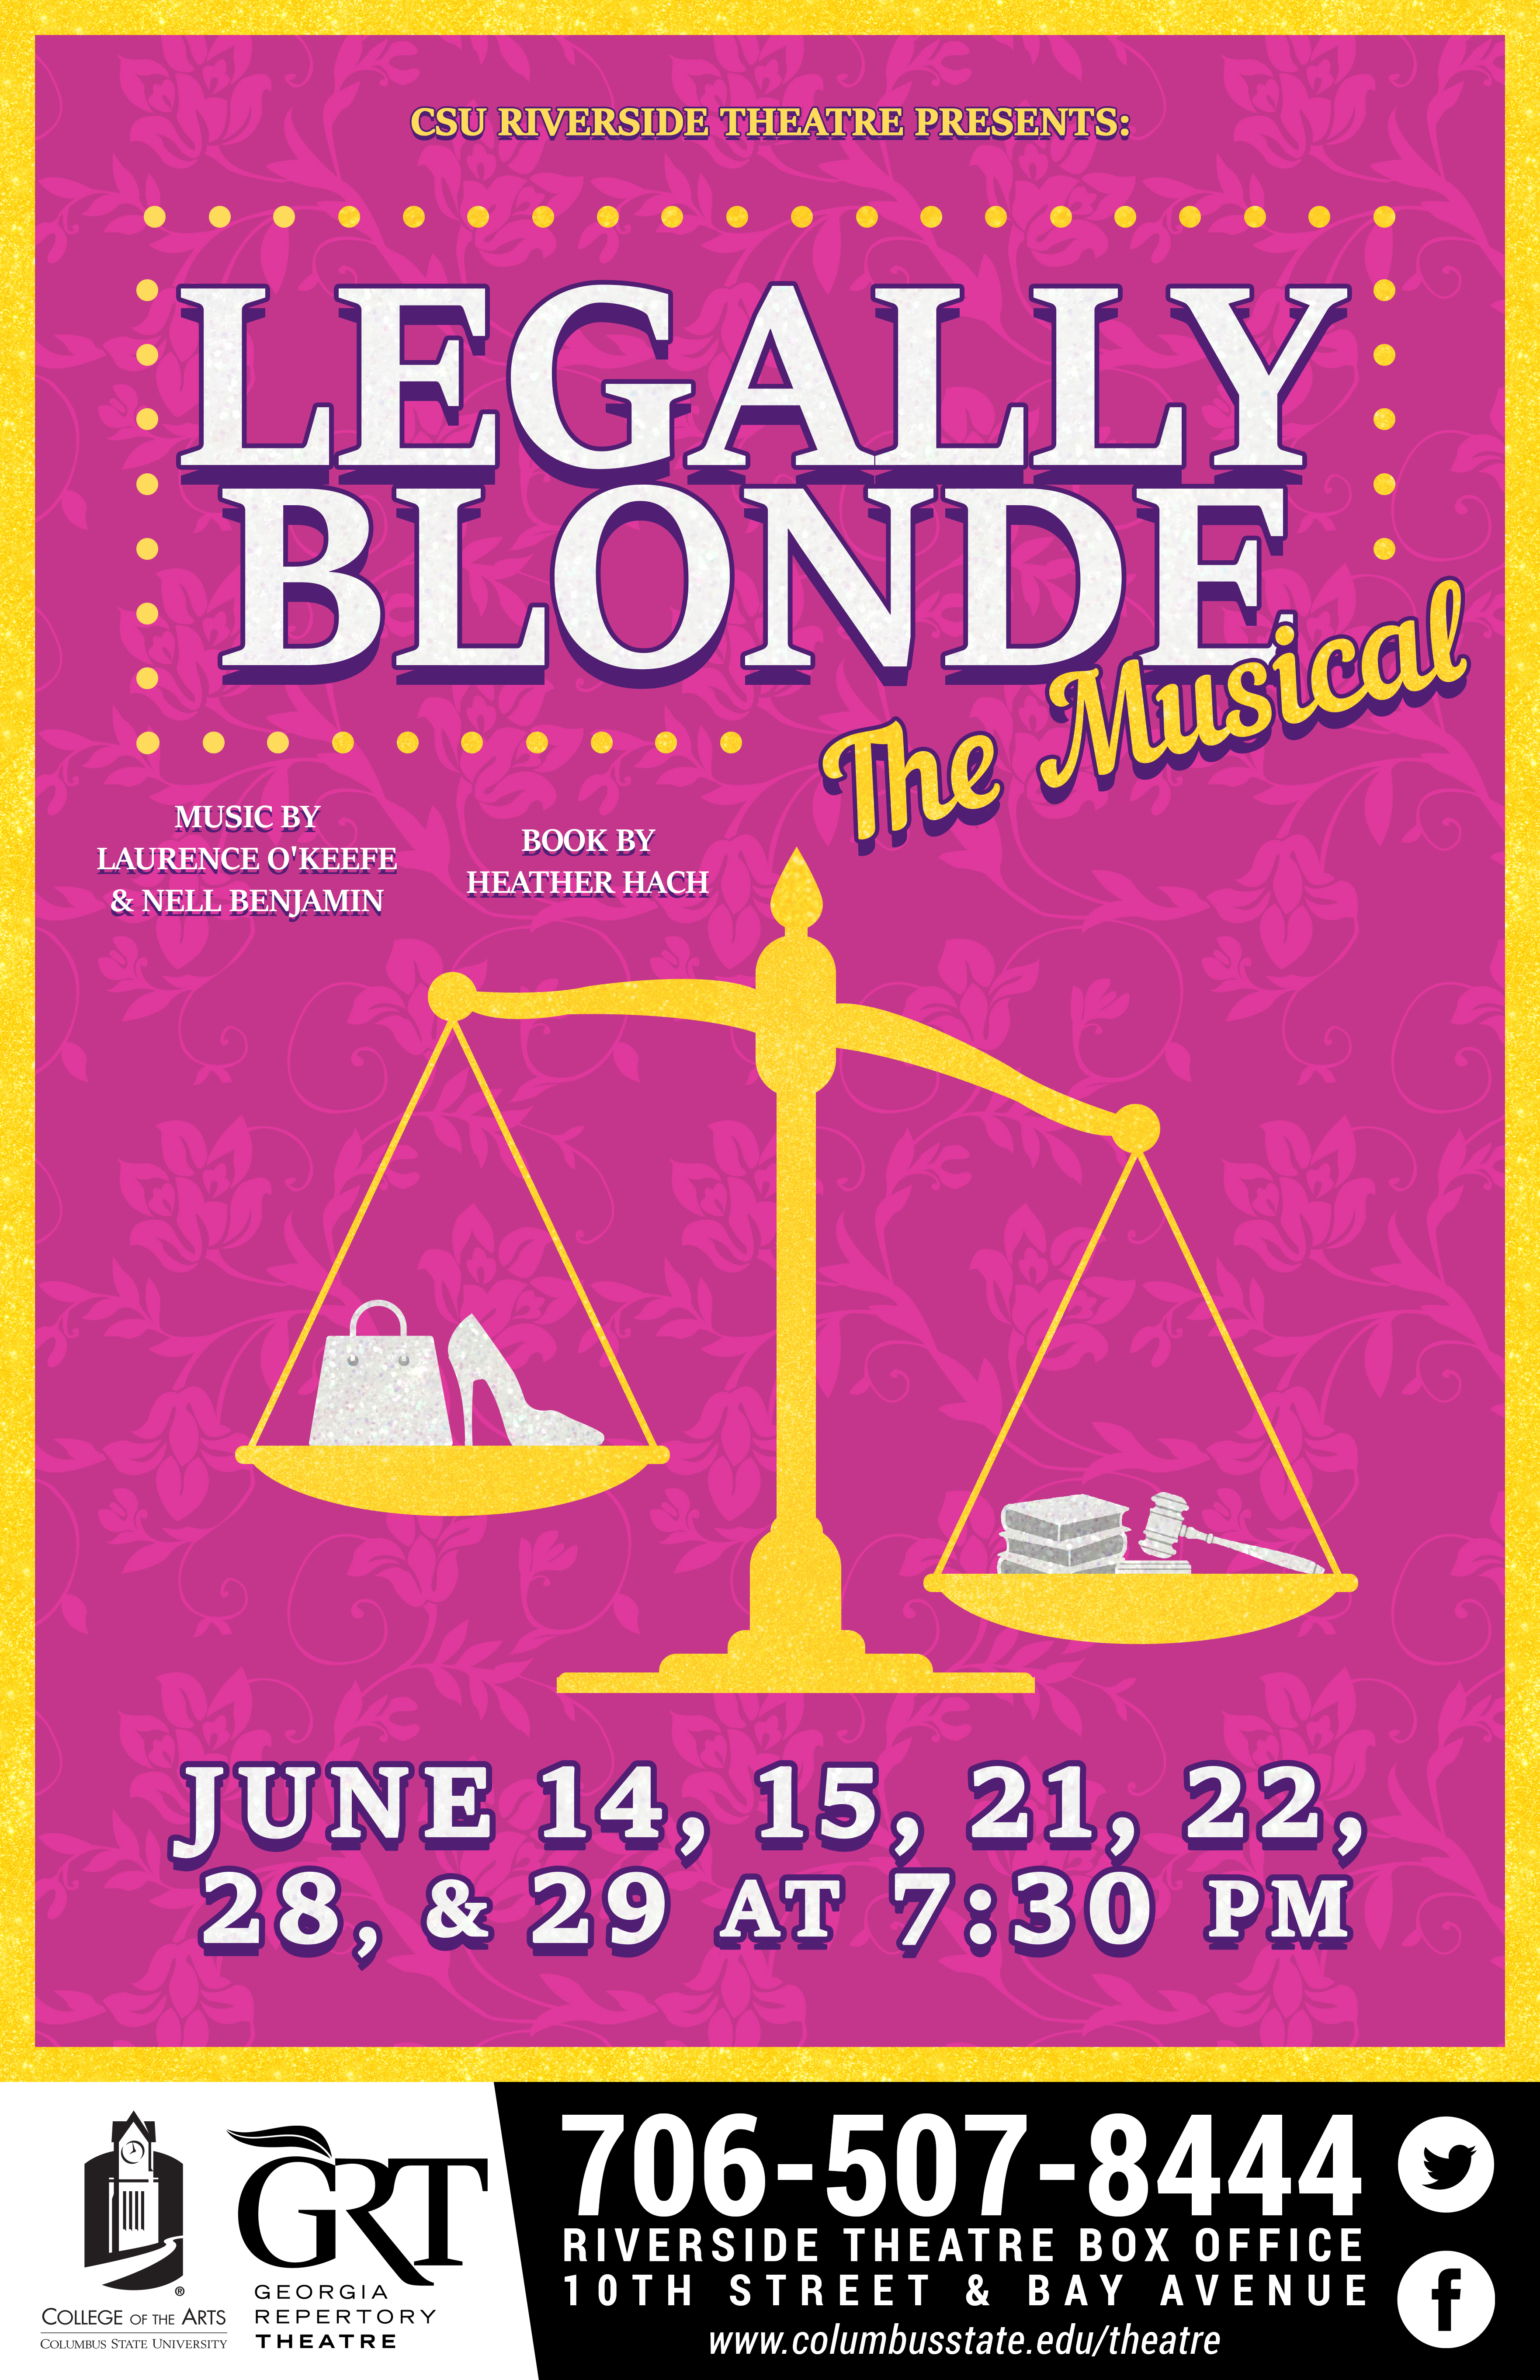 CSU Theatre: Legally Blonde